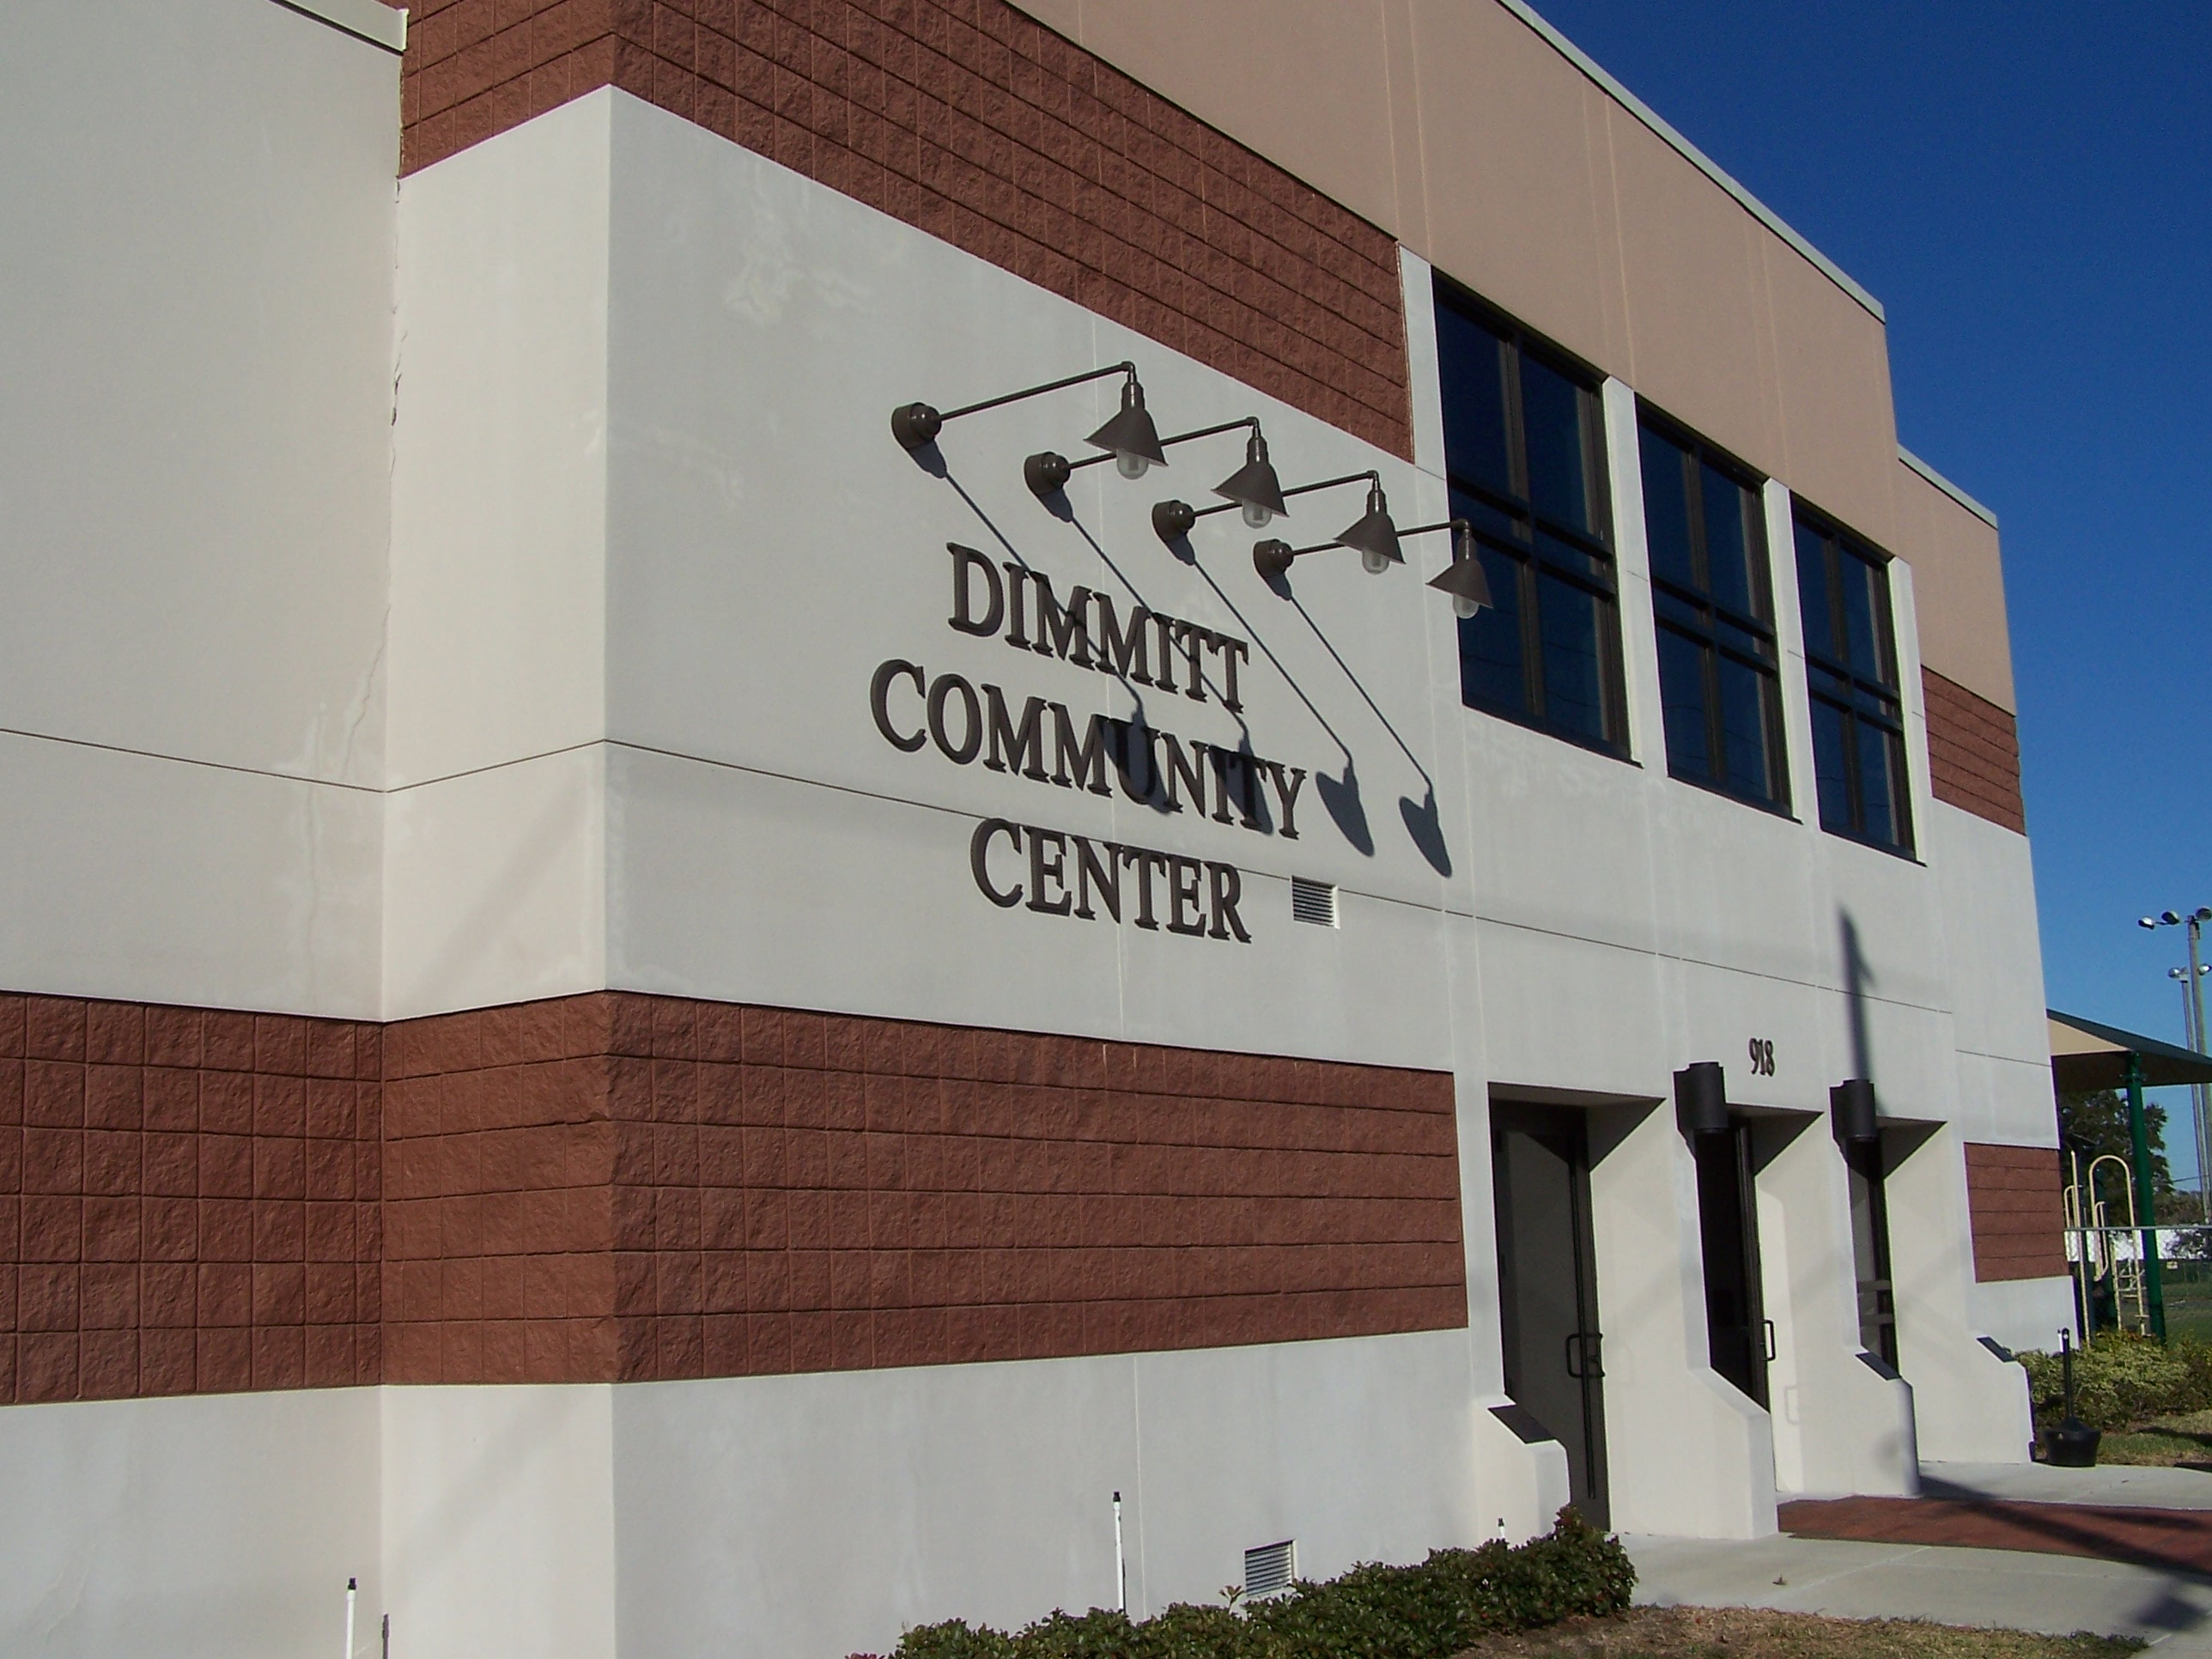 Dimmitt Community Center